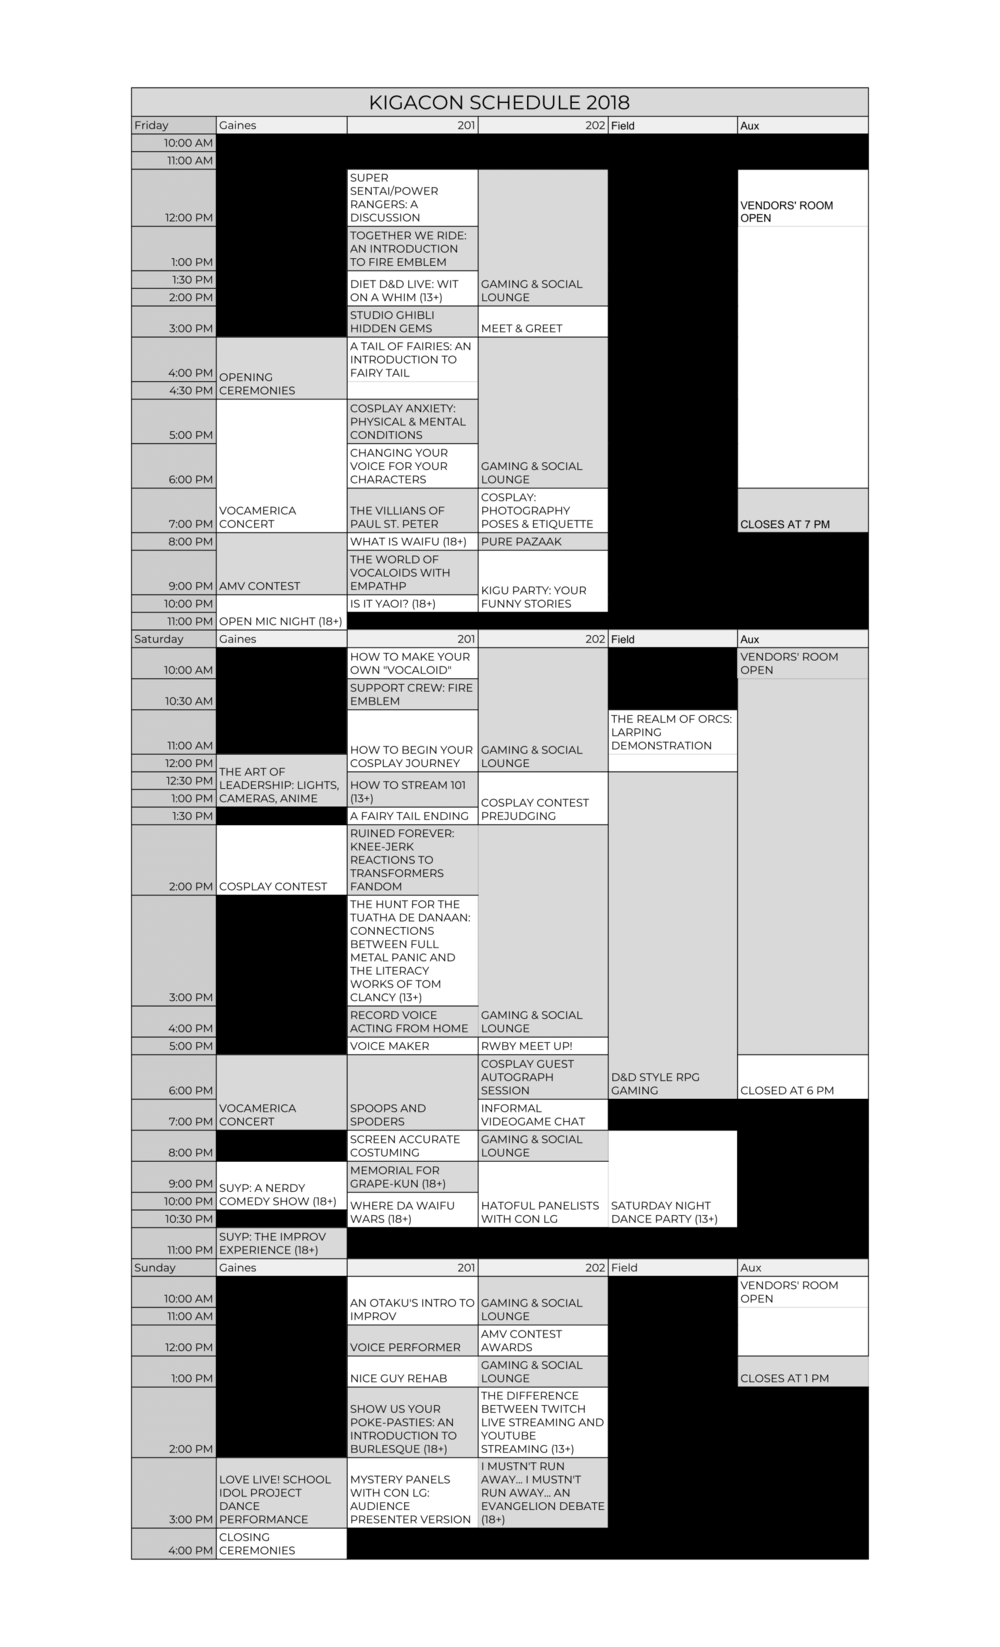 KIGACON 2018 CONVENTION SCHEDULE - FULL Convention Schedule (No Descriptions).png